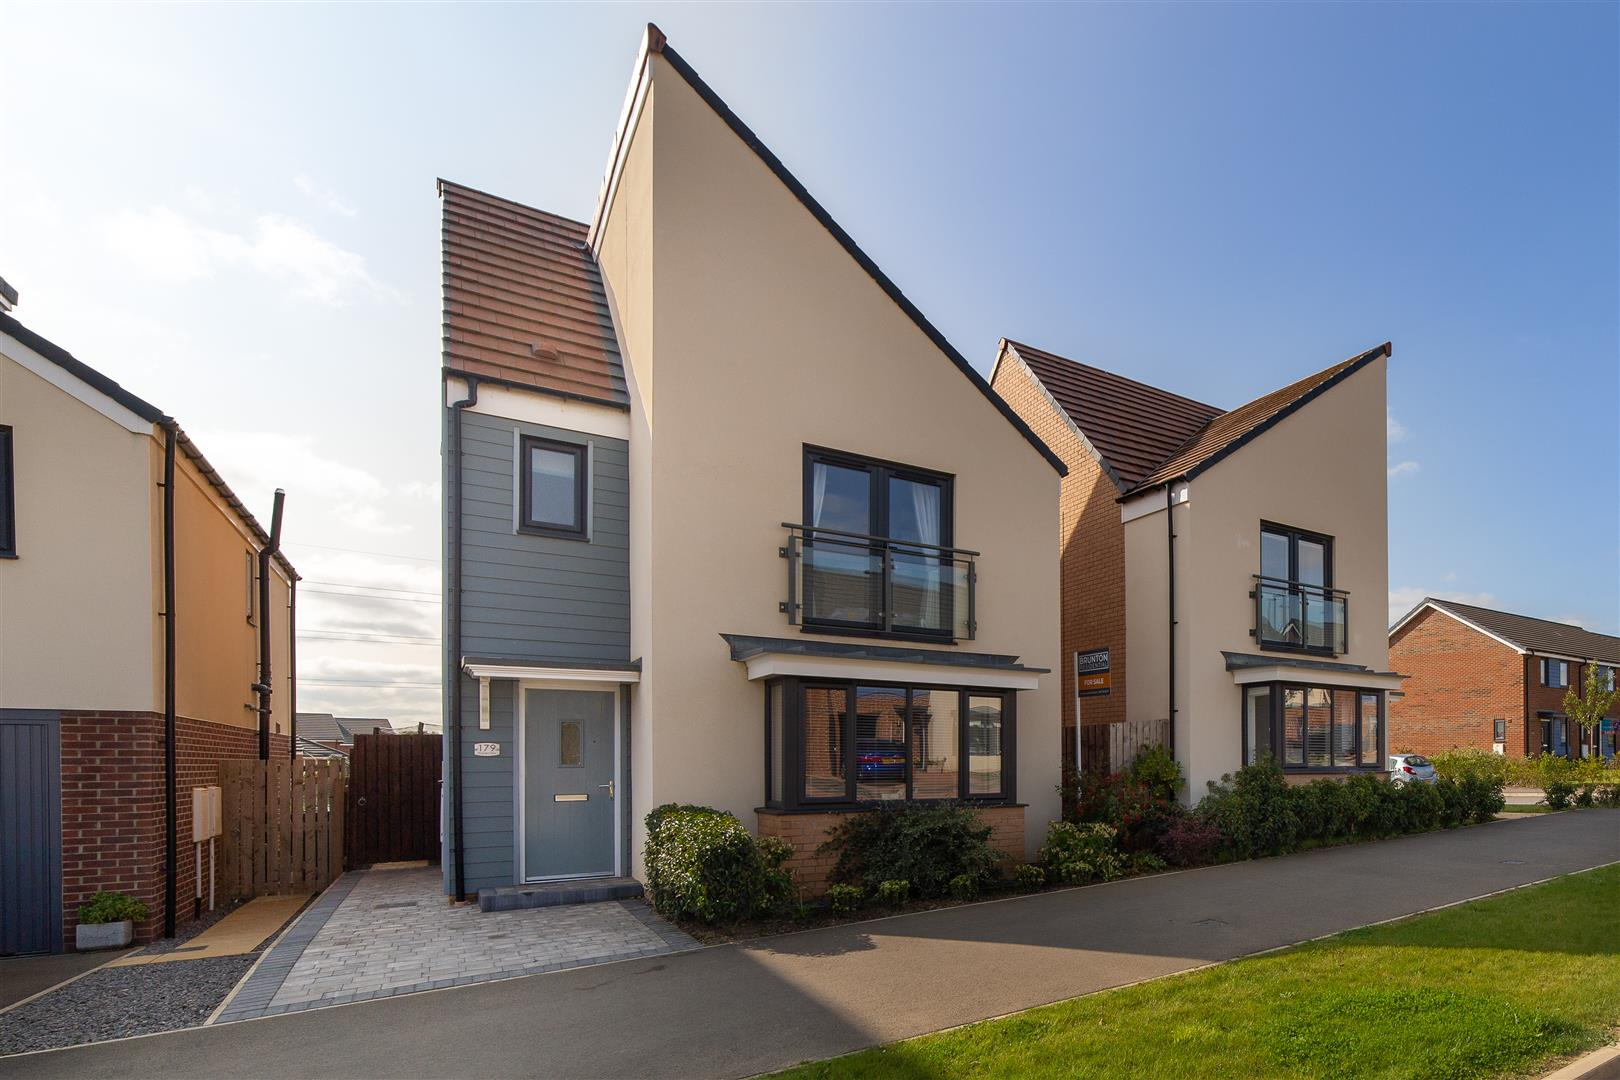 4 bed detached house for sale in Newcastle Upon Tyne, NE13 9DS, NE13